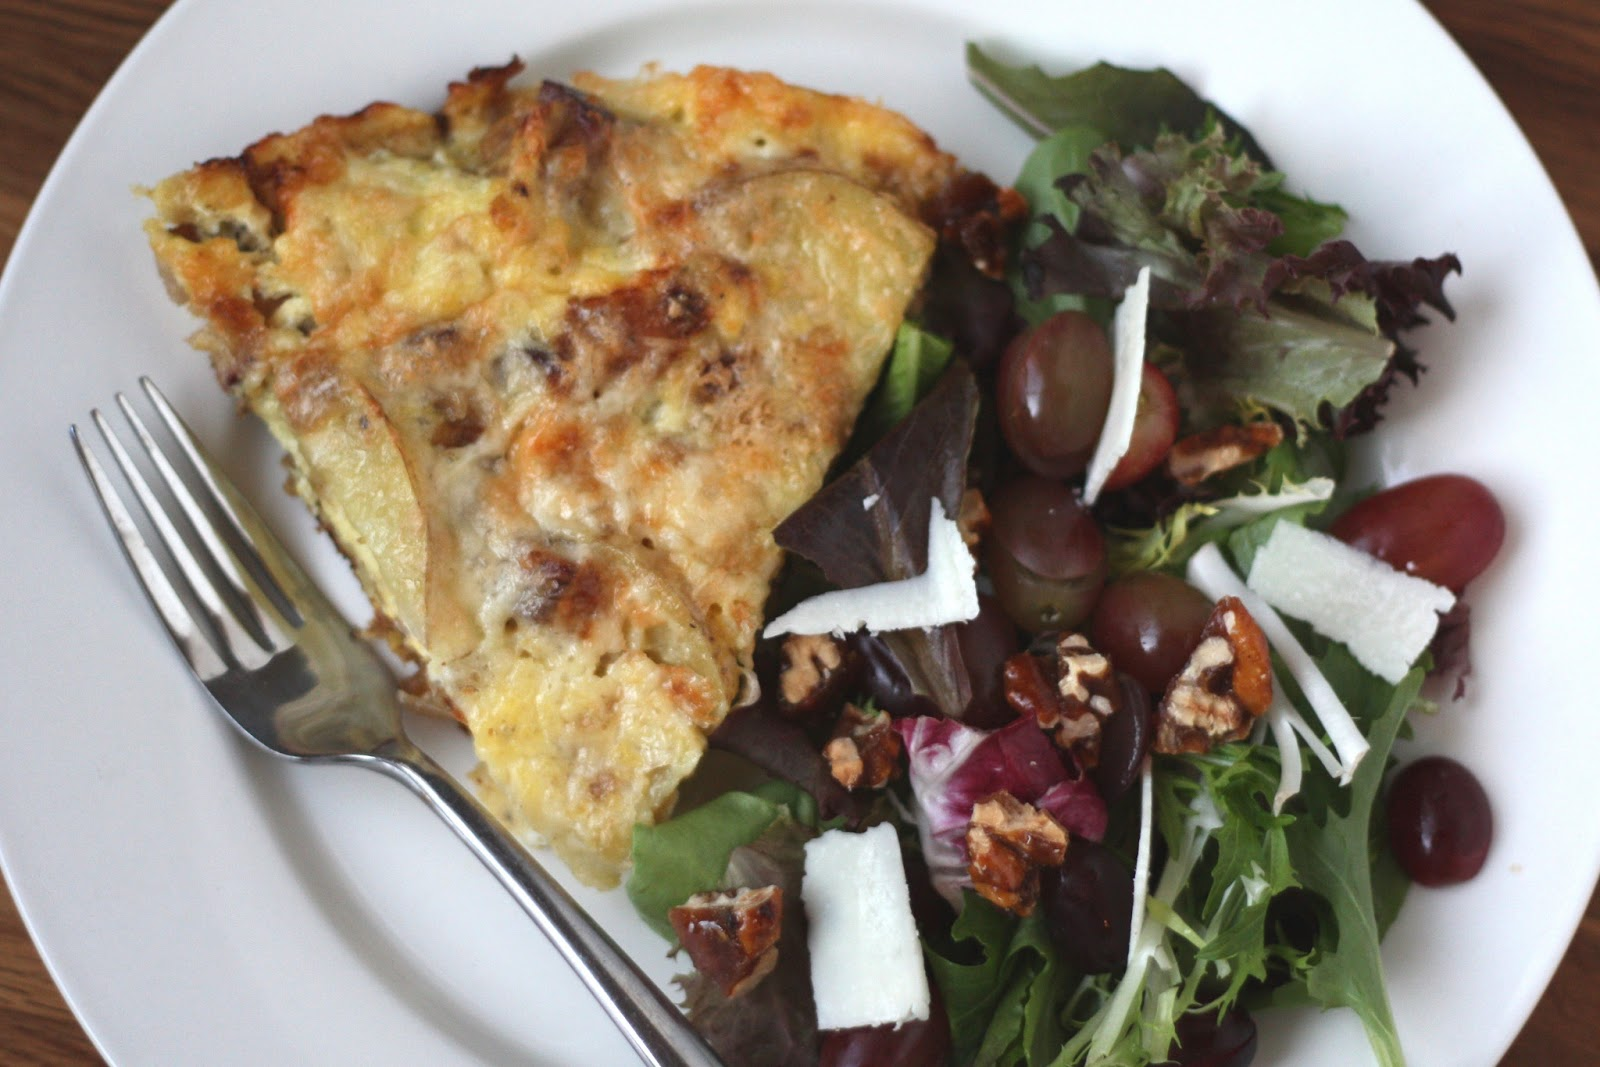 Barefeet In The Kitchen: Bacon Caramelized Onion and Potato Frittata